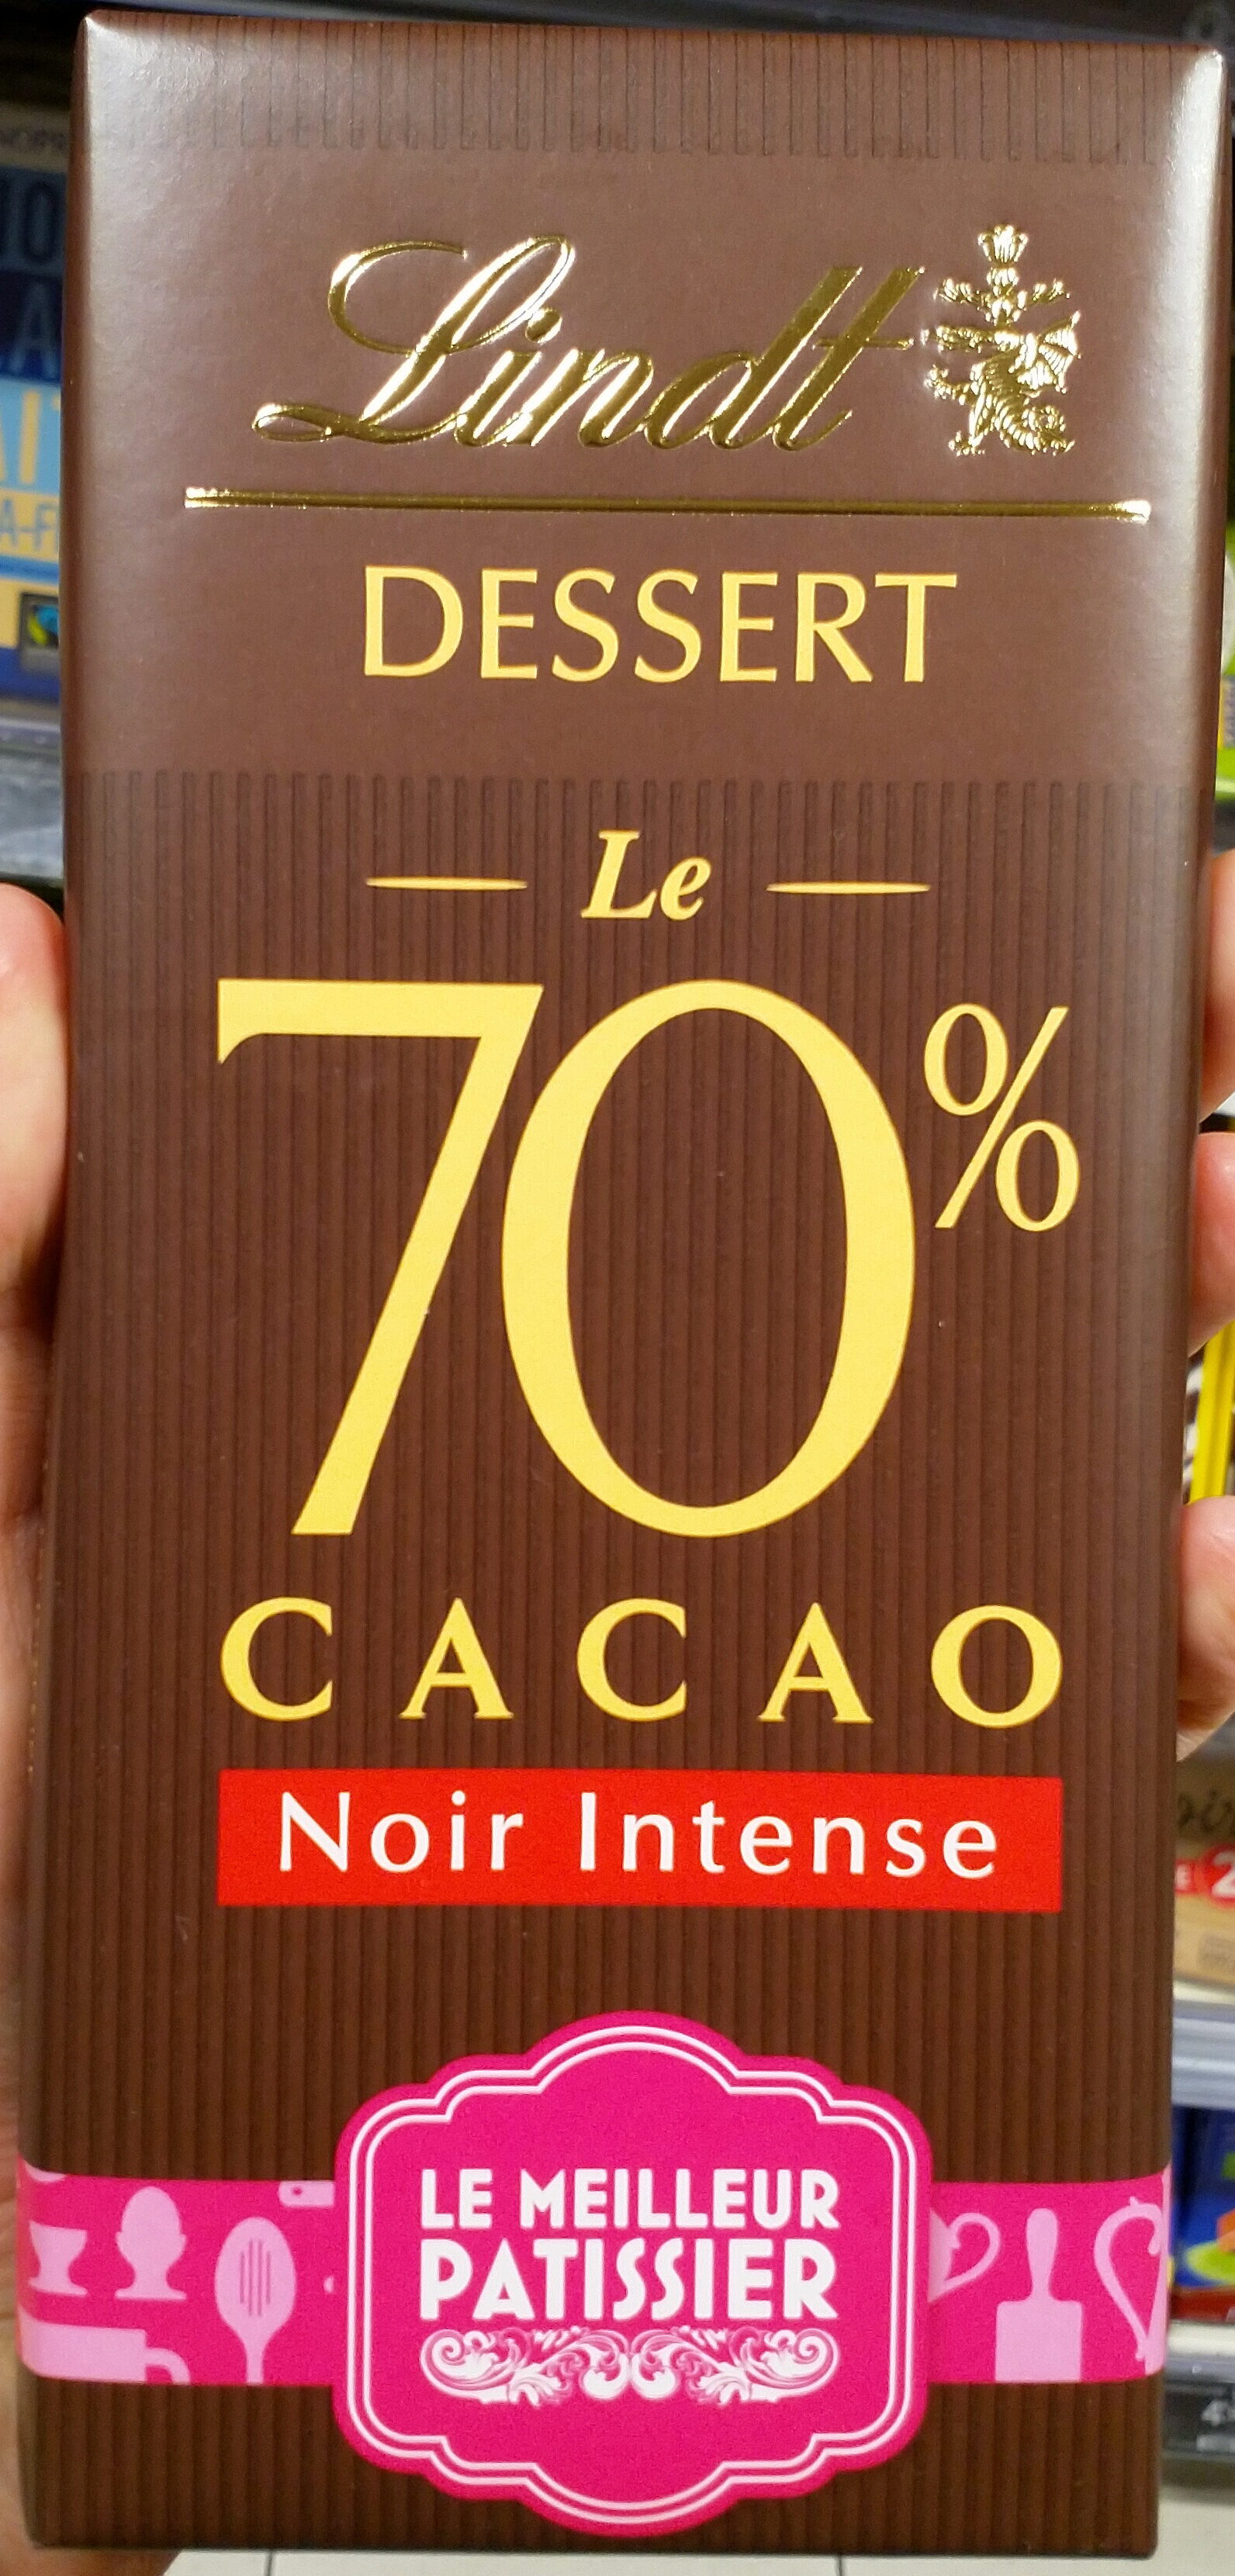 A cuisiner 70% Cacao - Product - fr